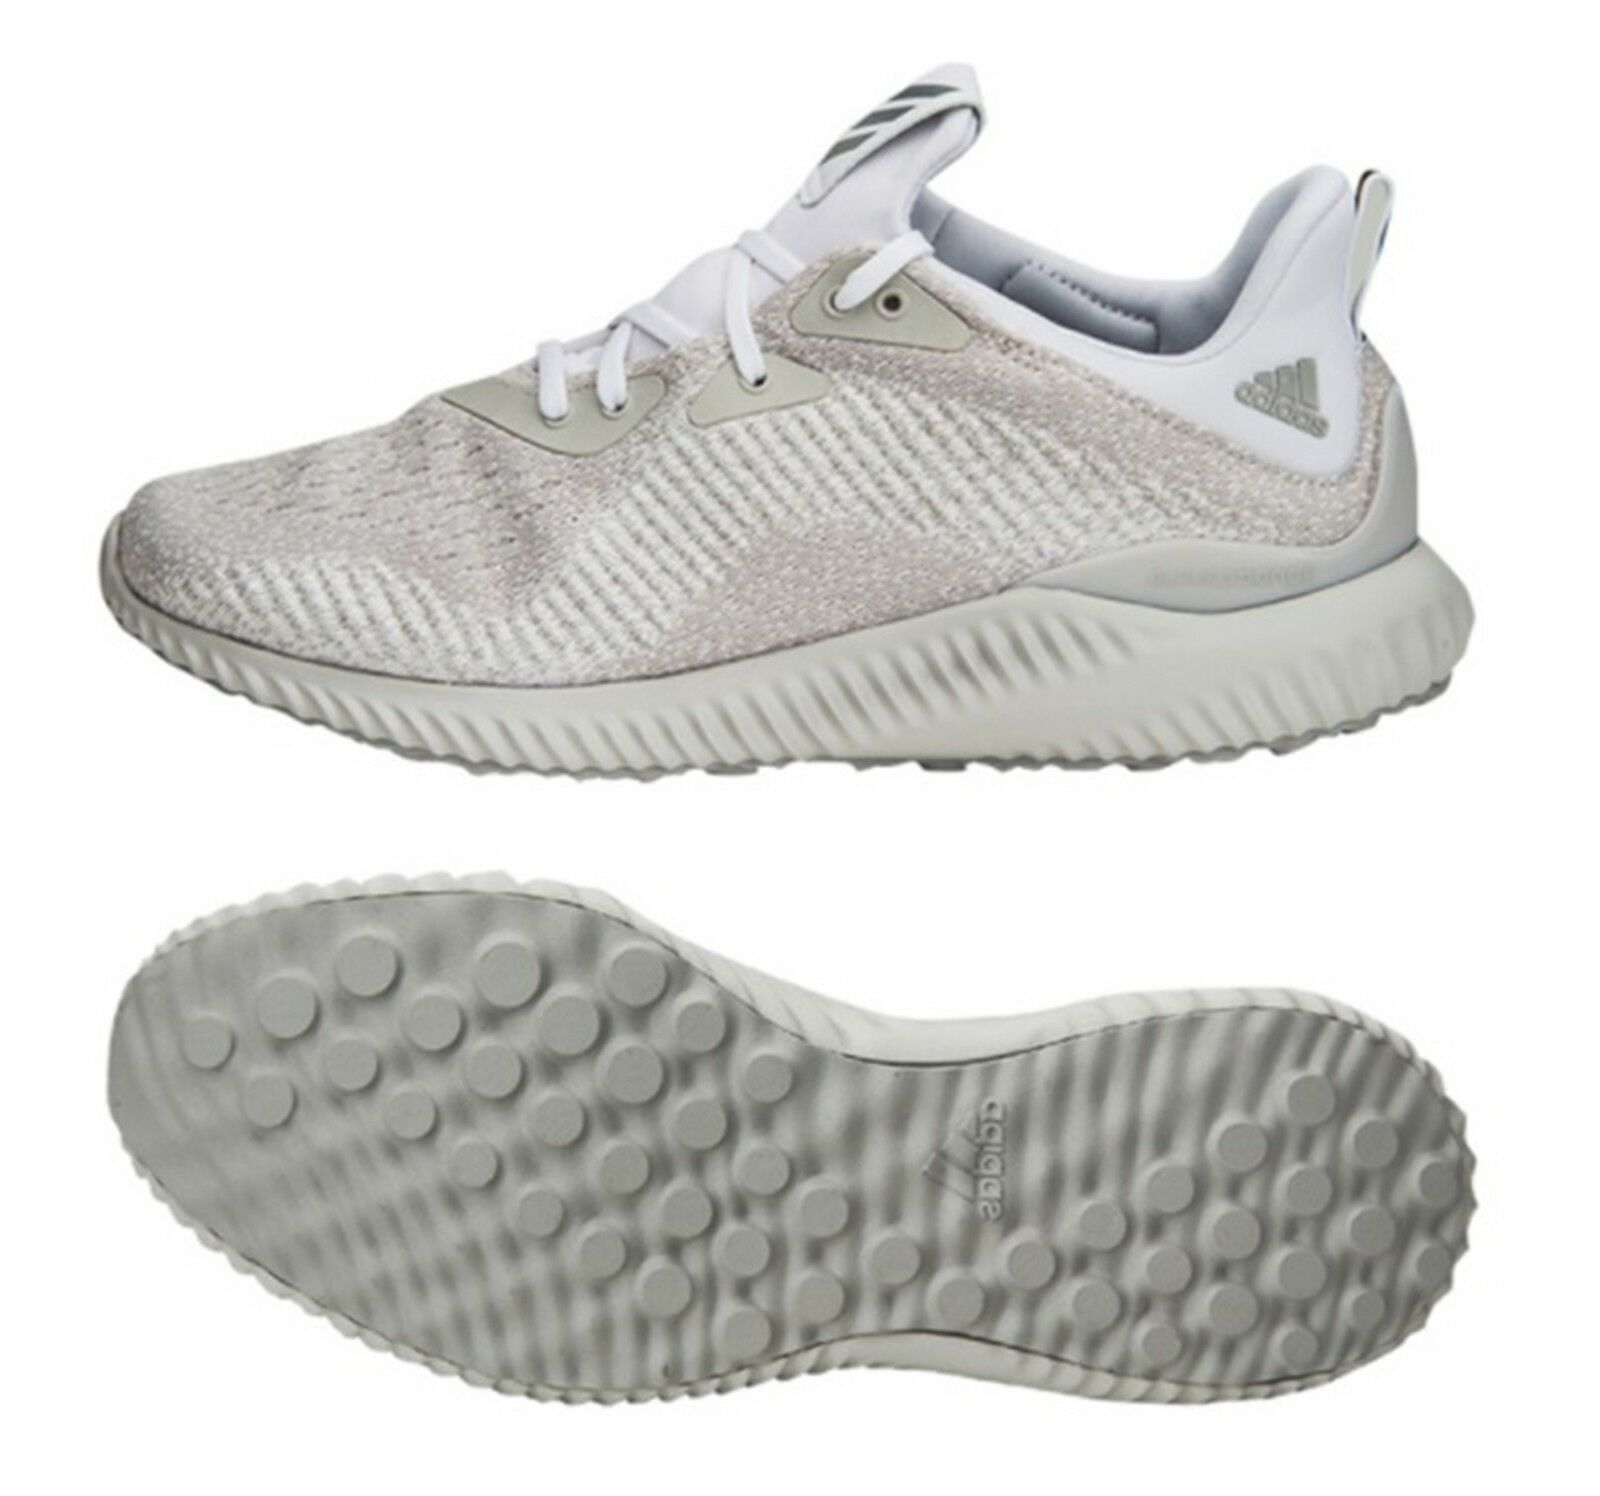 timeless design 4a4ac 53b6c Adidas Men Alpha-bounce Training shoes Running Beige Sneakers shoes DB1092  EM GYM otycat8860-Men